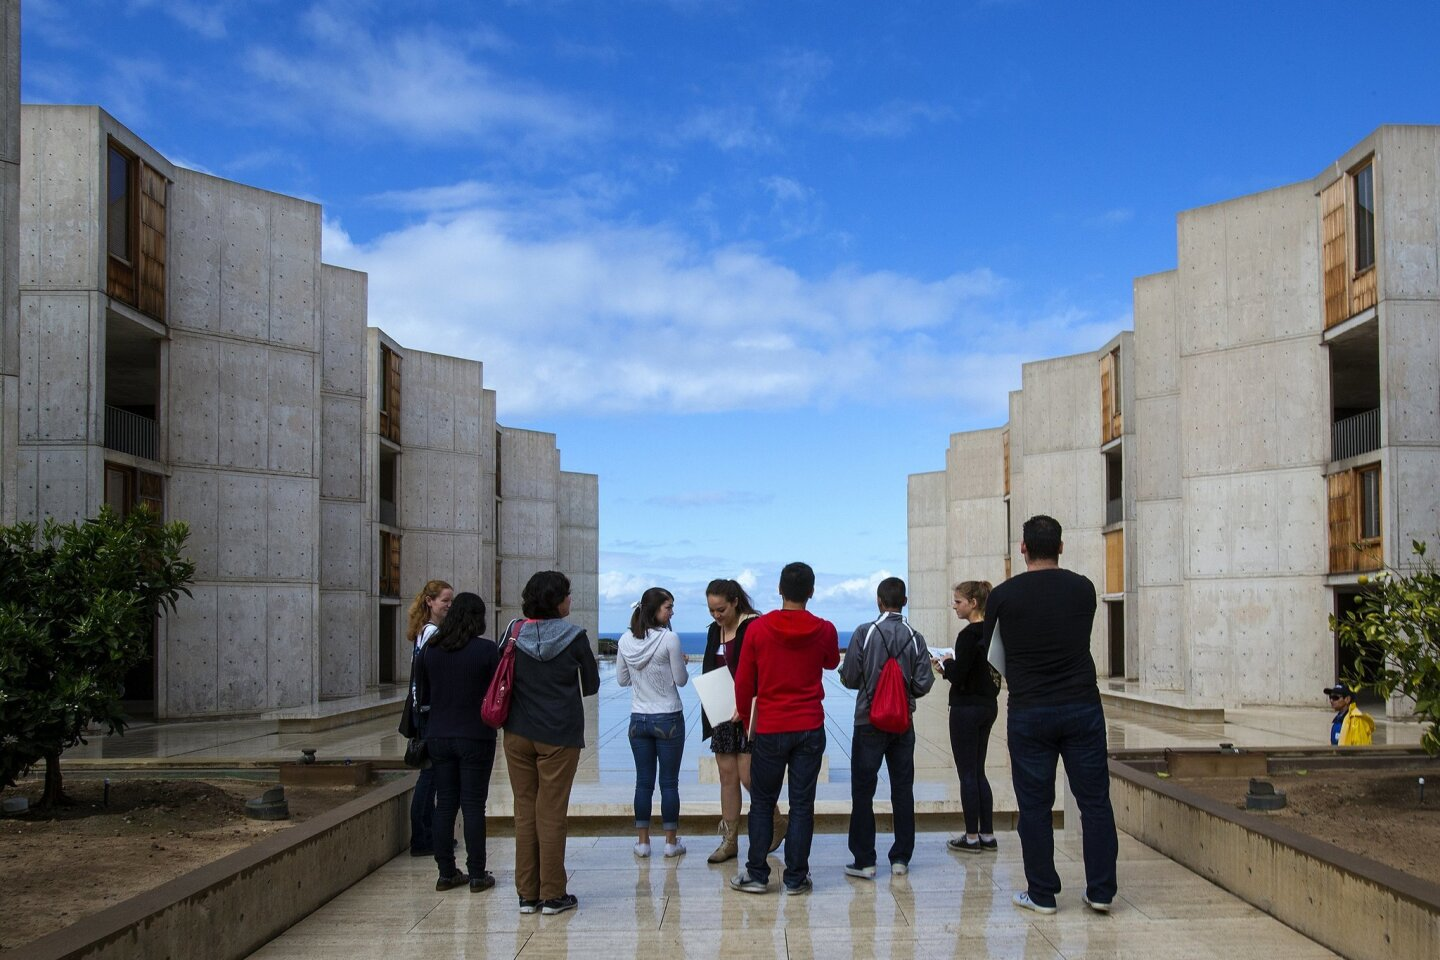 After being  broken into much smaller groups, these high school students stop at the Salk Institute courtyard to enjoy the view.